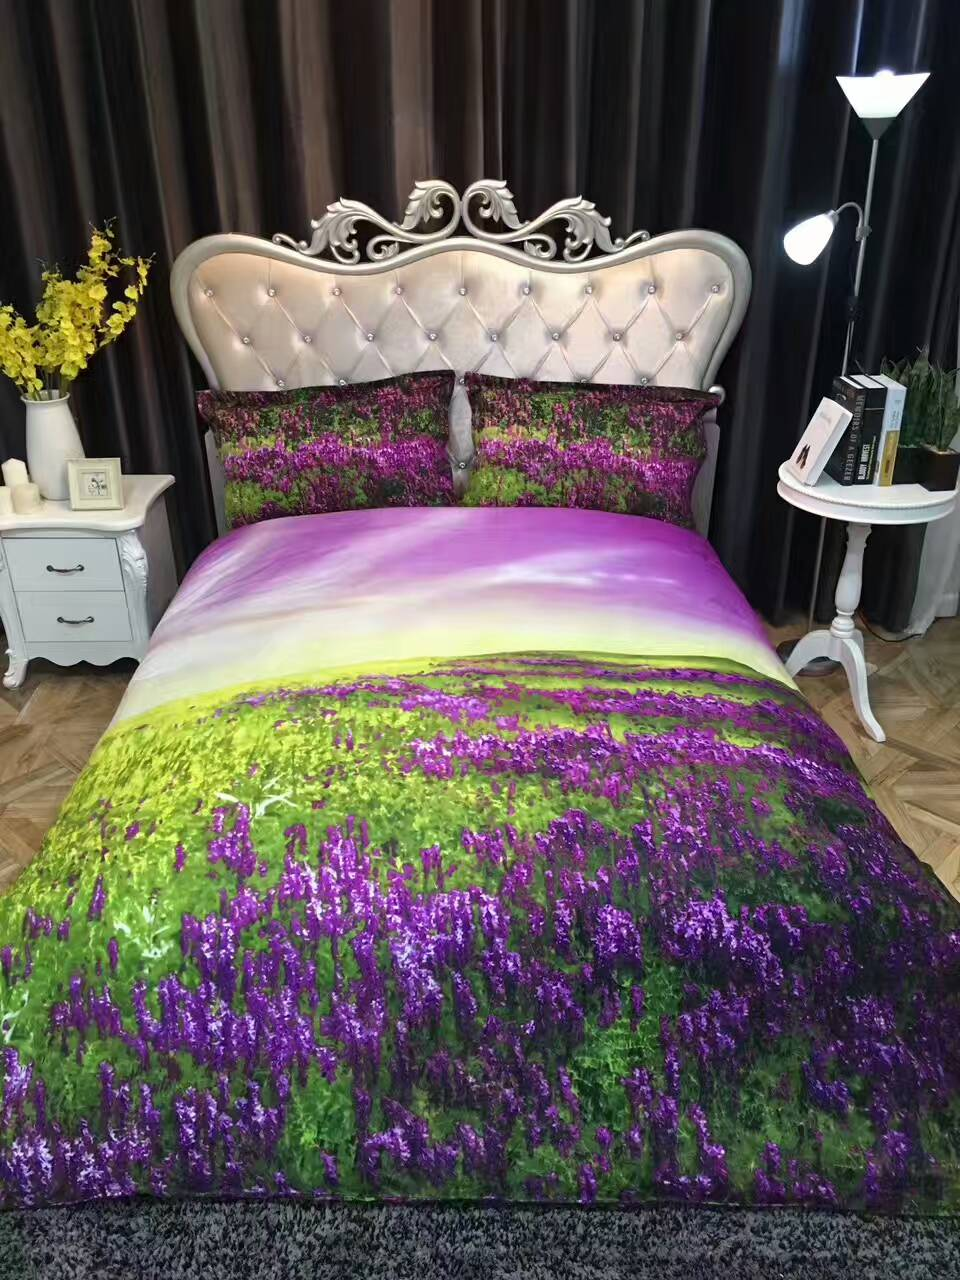 Floral cotton bed sheets - Fashion Cotton Pastoral Style Bedding Set Lavender Printed Bed Linen Printed Floral Bedclothes Duvet Cover Bed